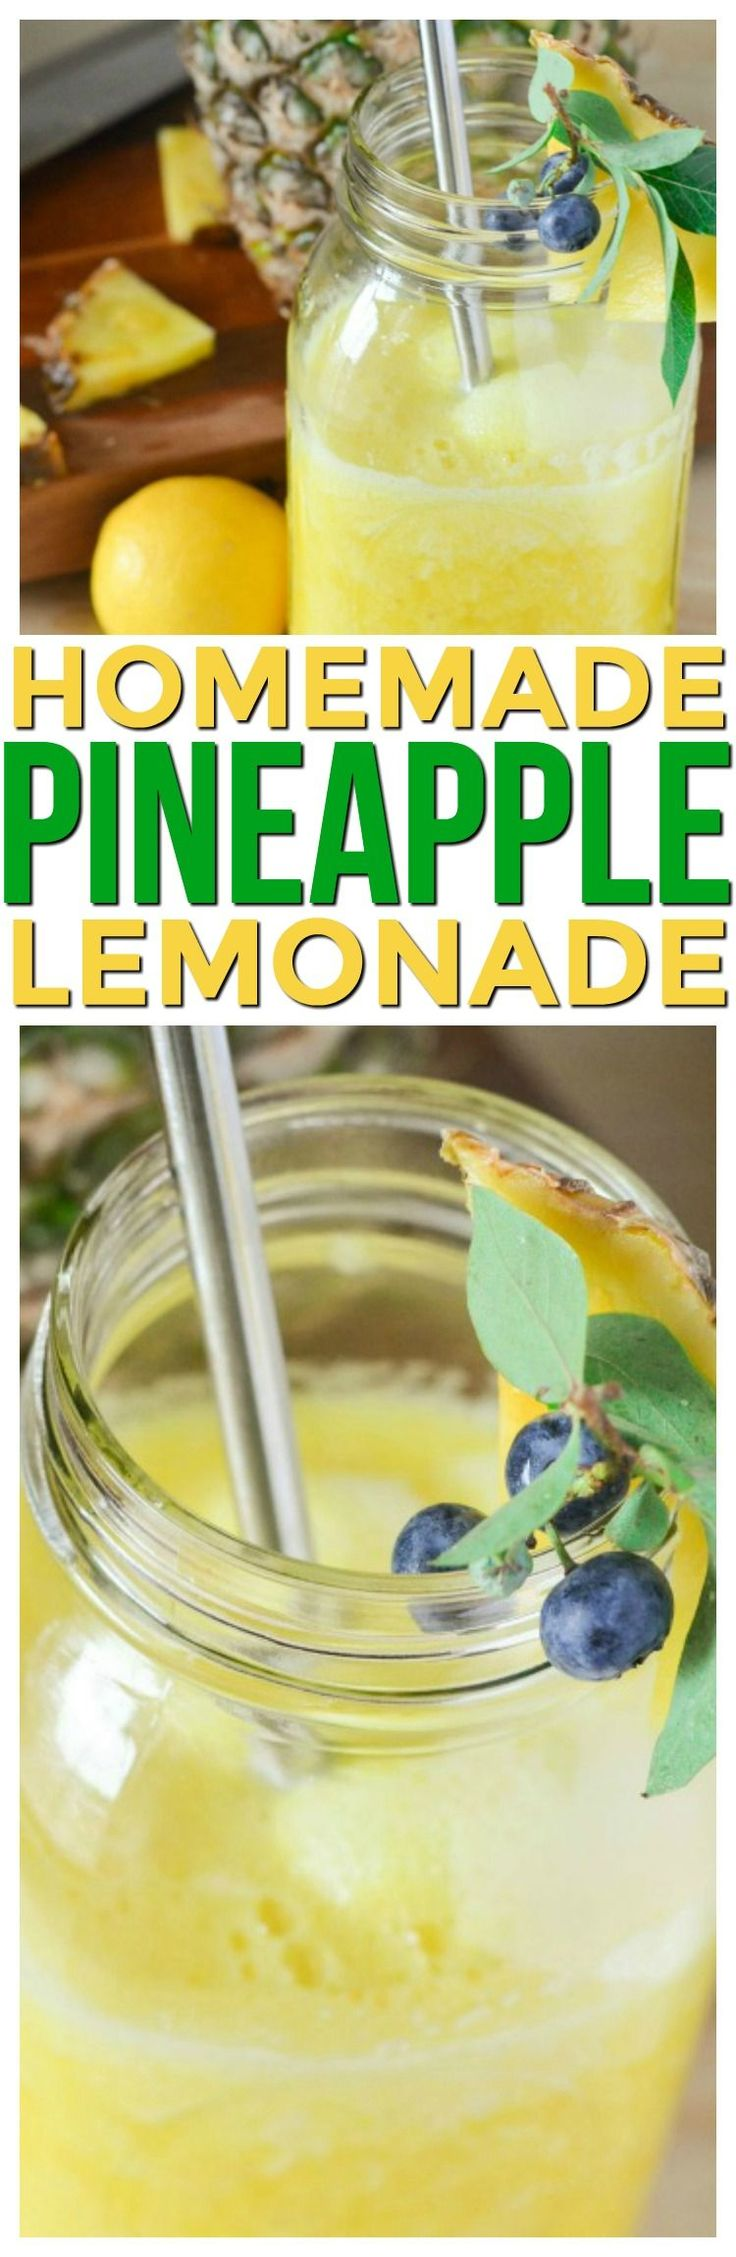 This frosty Pineapple Lemonade Recipe Homemade is perfection! Make it if you need a refreshing drink or homemade drink recipes nonalcoholic for kids it's a healthy summer beverage. via @KnowYourProdu